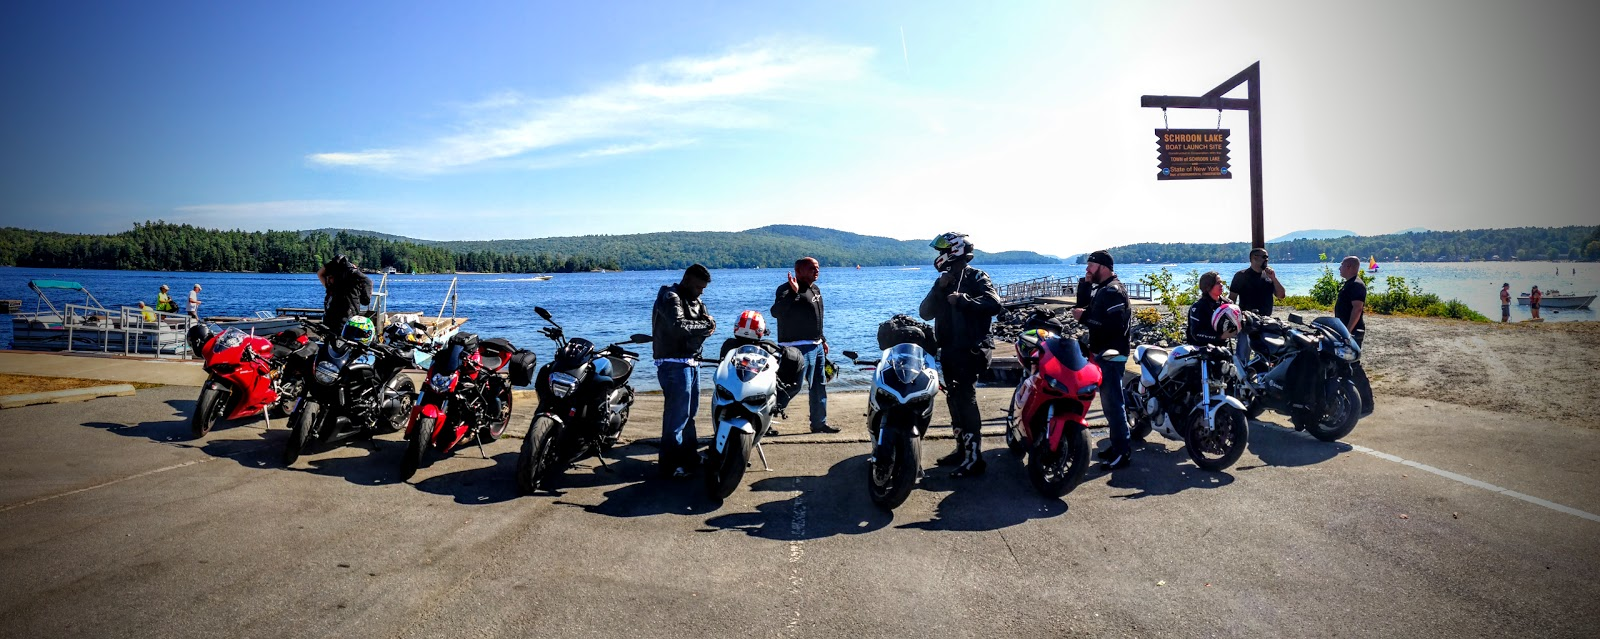 Tigh Loughhead and the East Coast Ducs at the Schroon Lake, New York